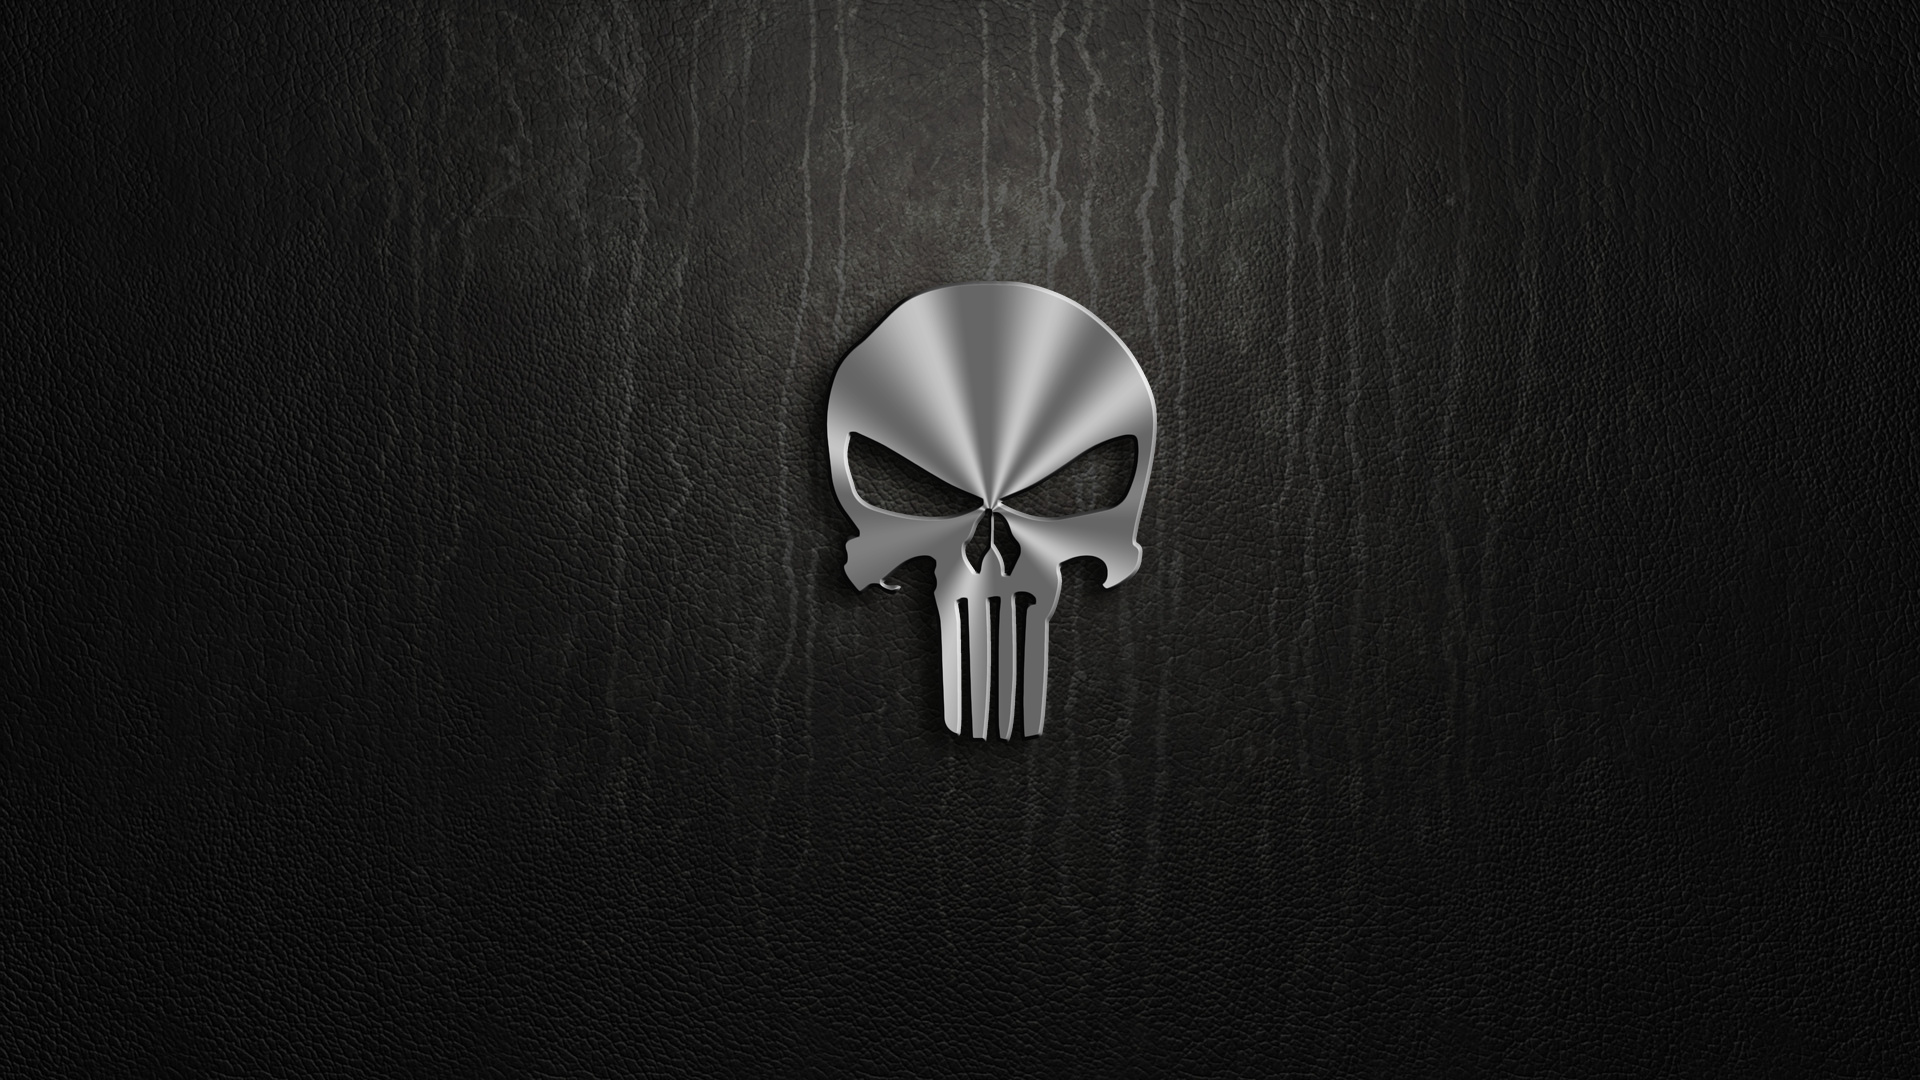 High Resolution The Punisher Wallpapers | Background ID:27089714